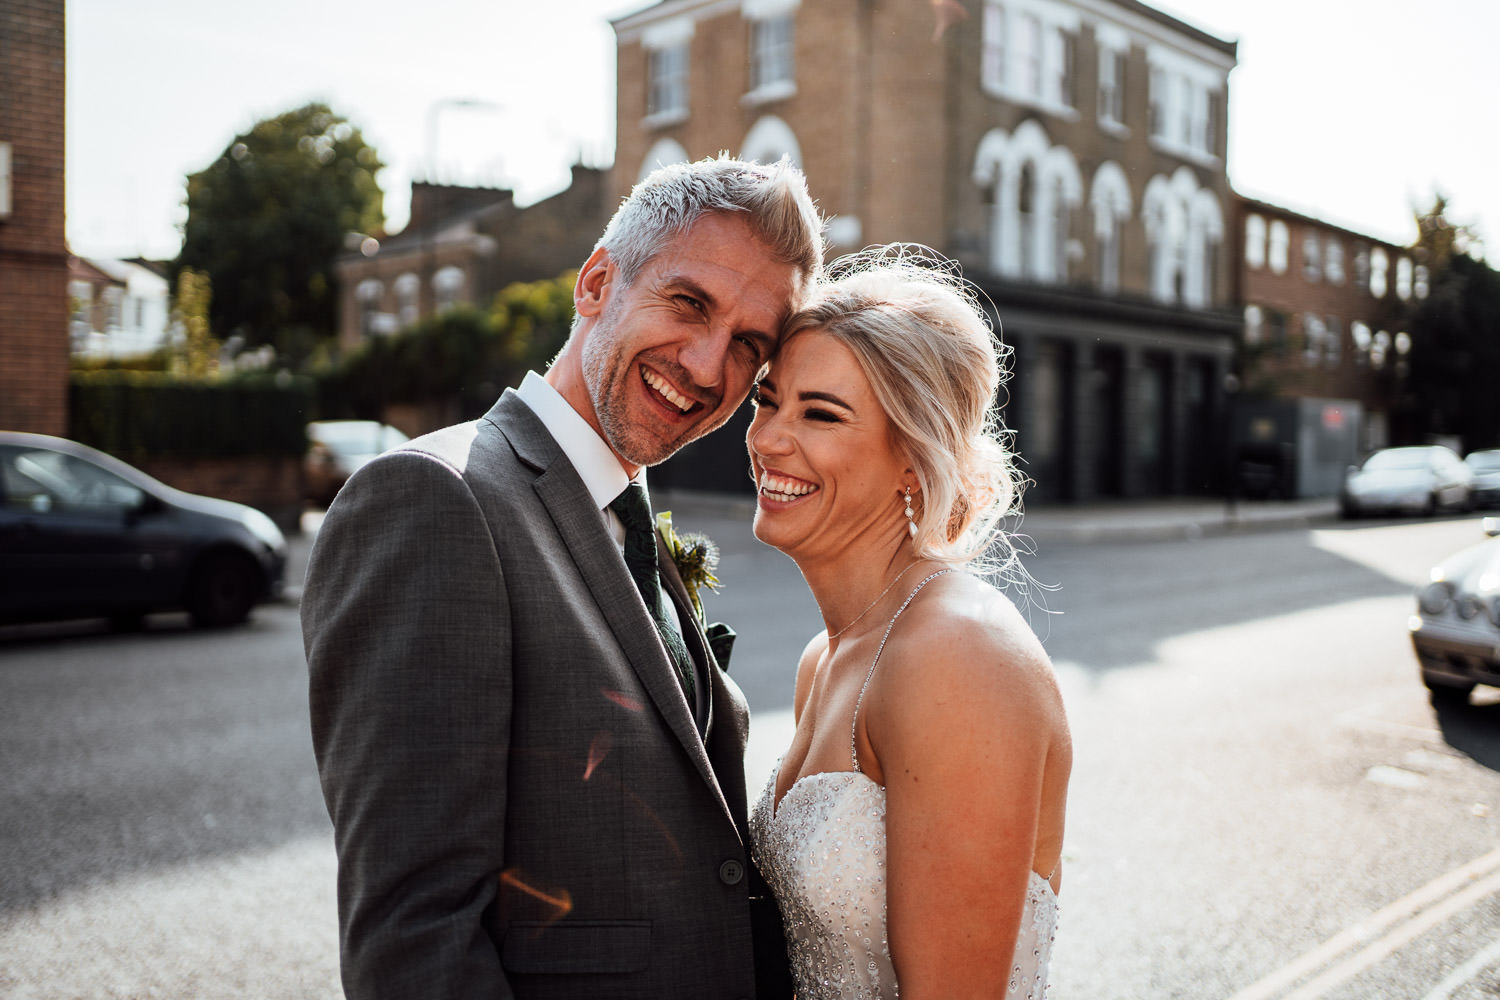 cool bride and groom in the roost pub dalston wedding